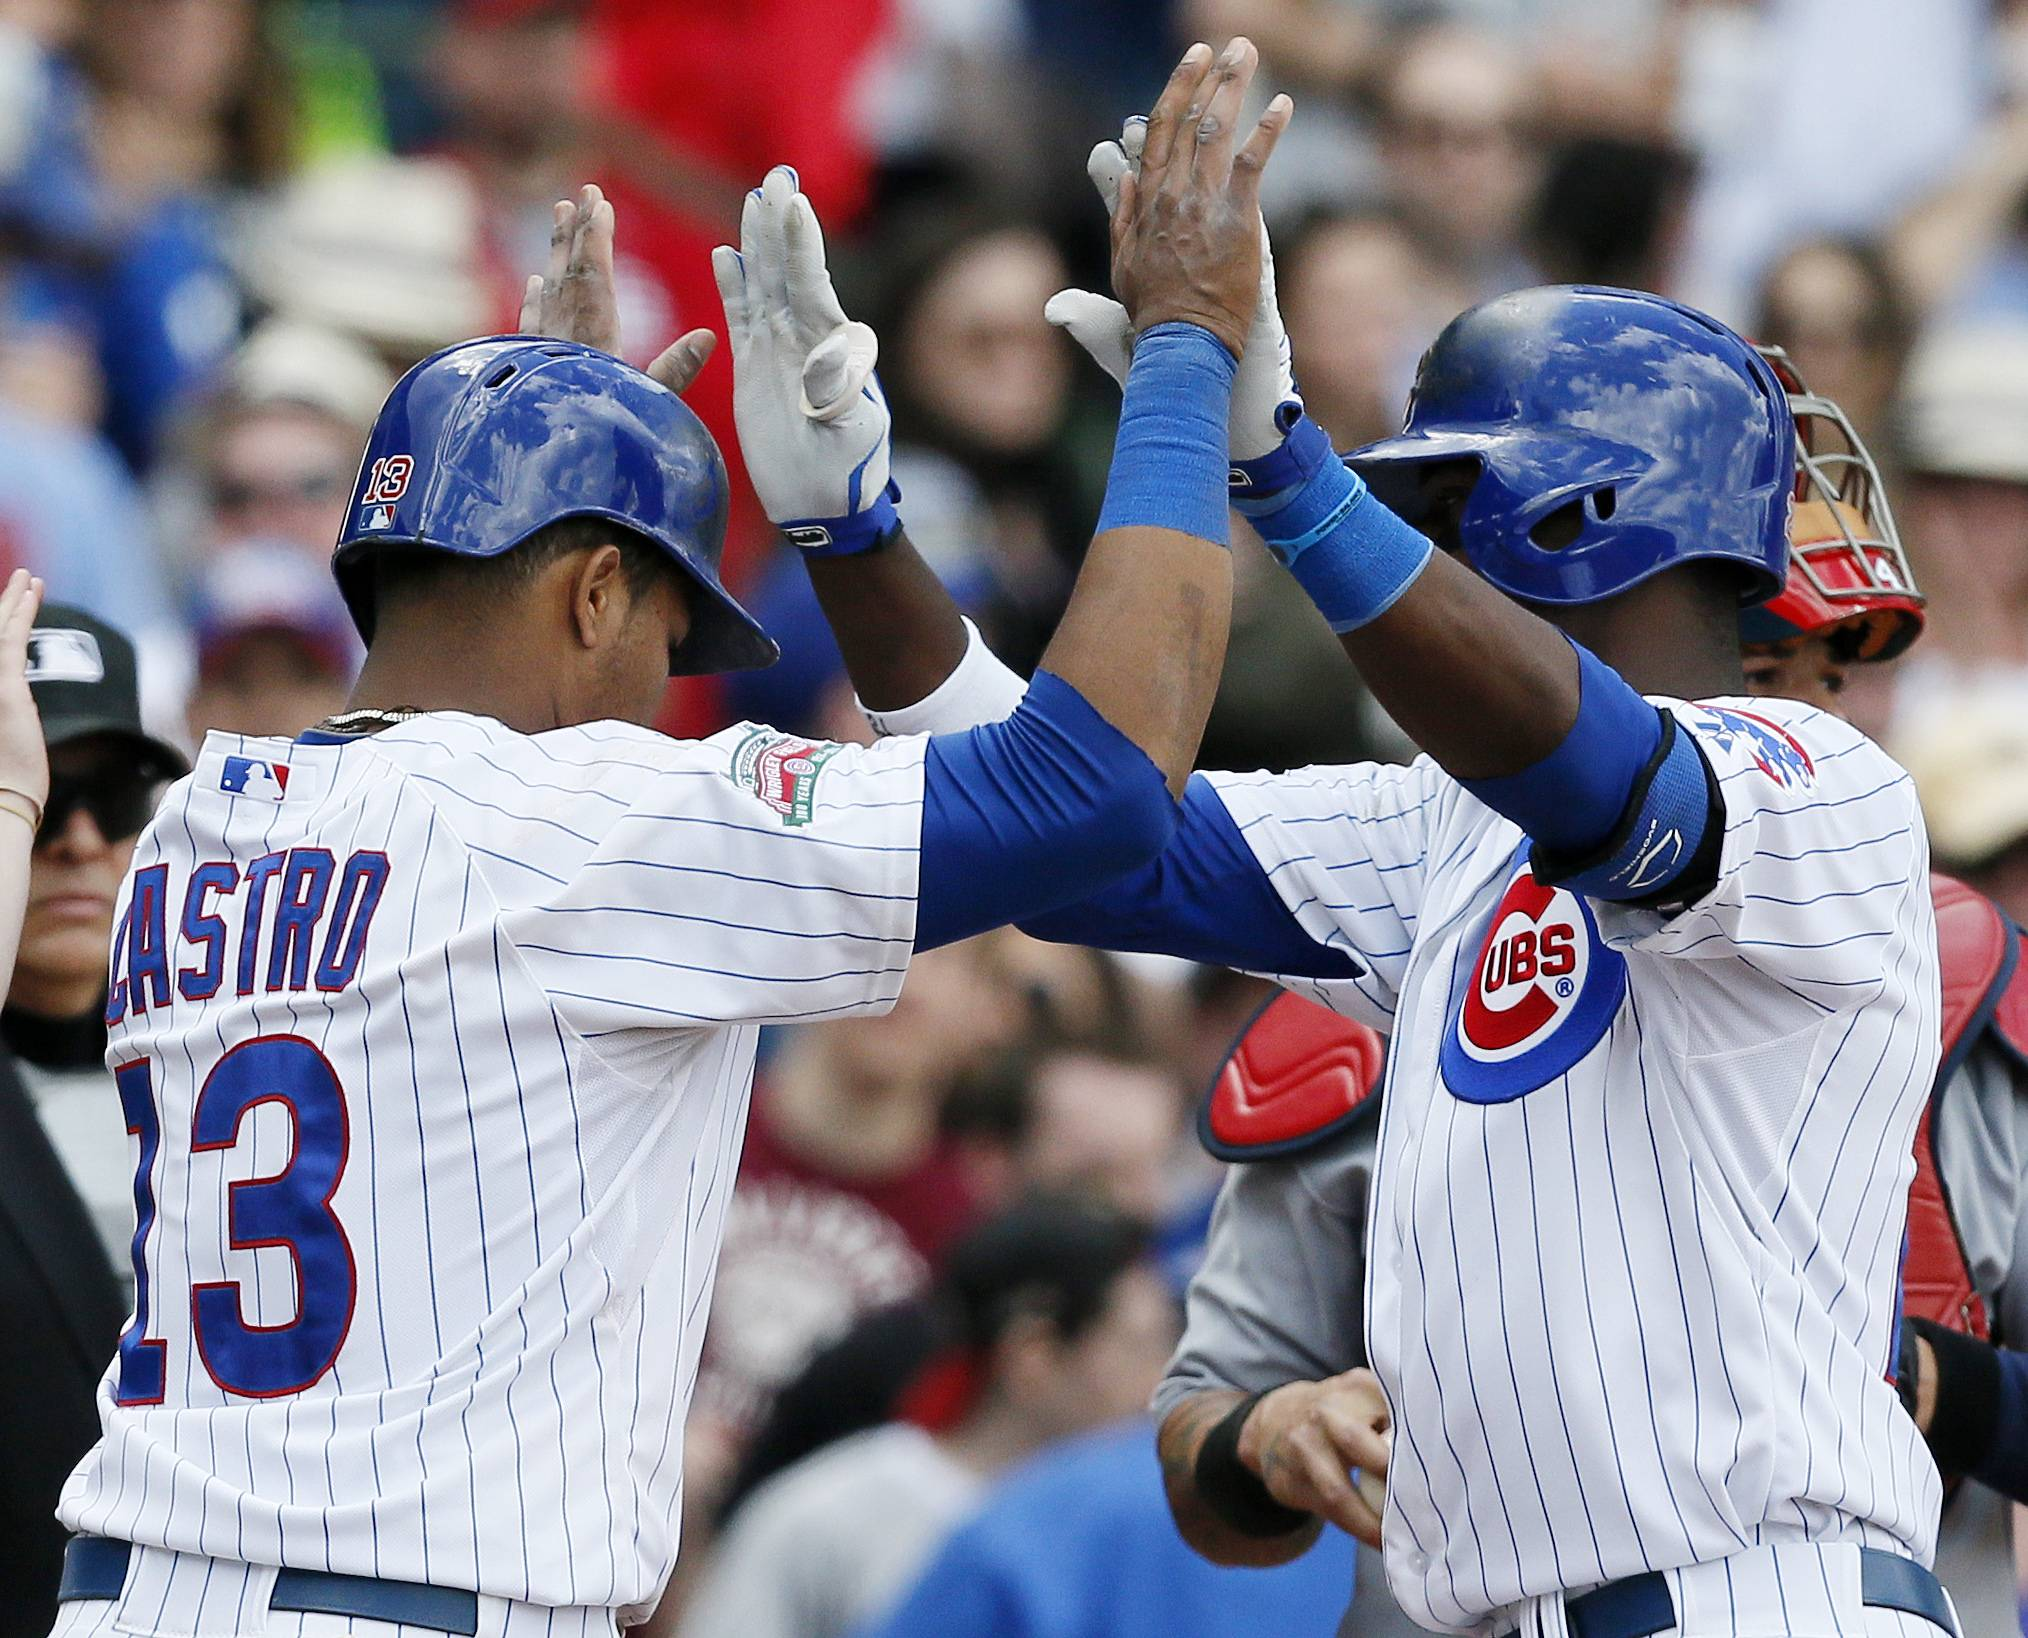 After hitting a two-run home run, Chicago Cubs' Junior Lake, right, celebrates with Starlin Castro, left, who scored, during the sixth inning of a baseball game against the St. Louis Cardinals on Saturday, May 3, 2014, in Chicago.